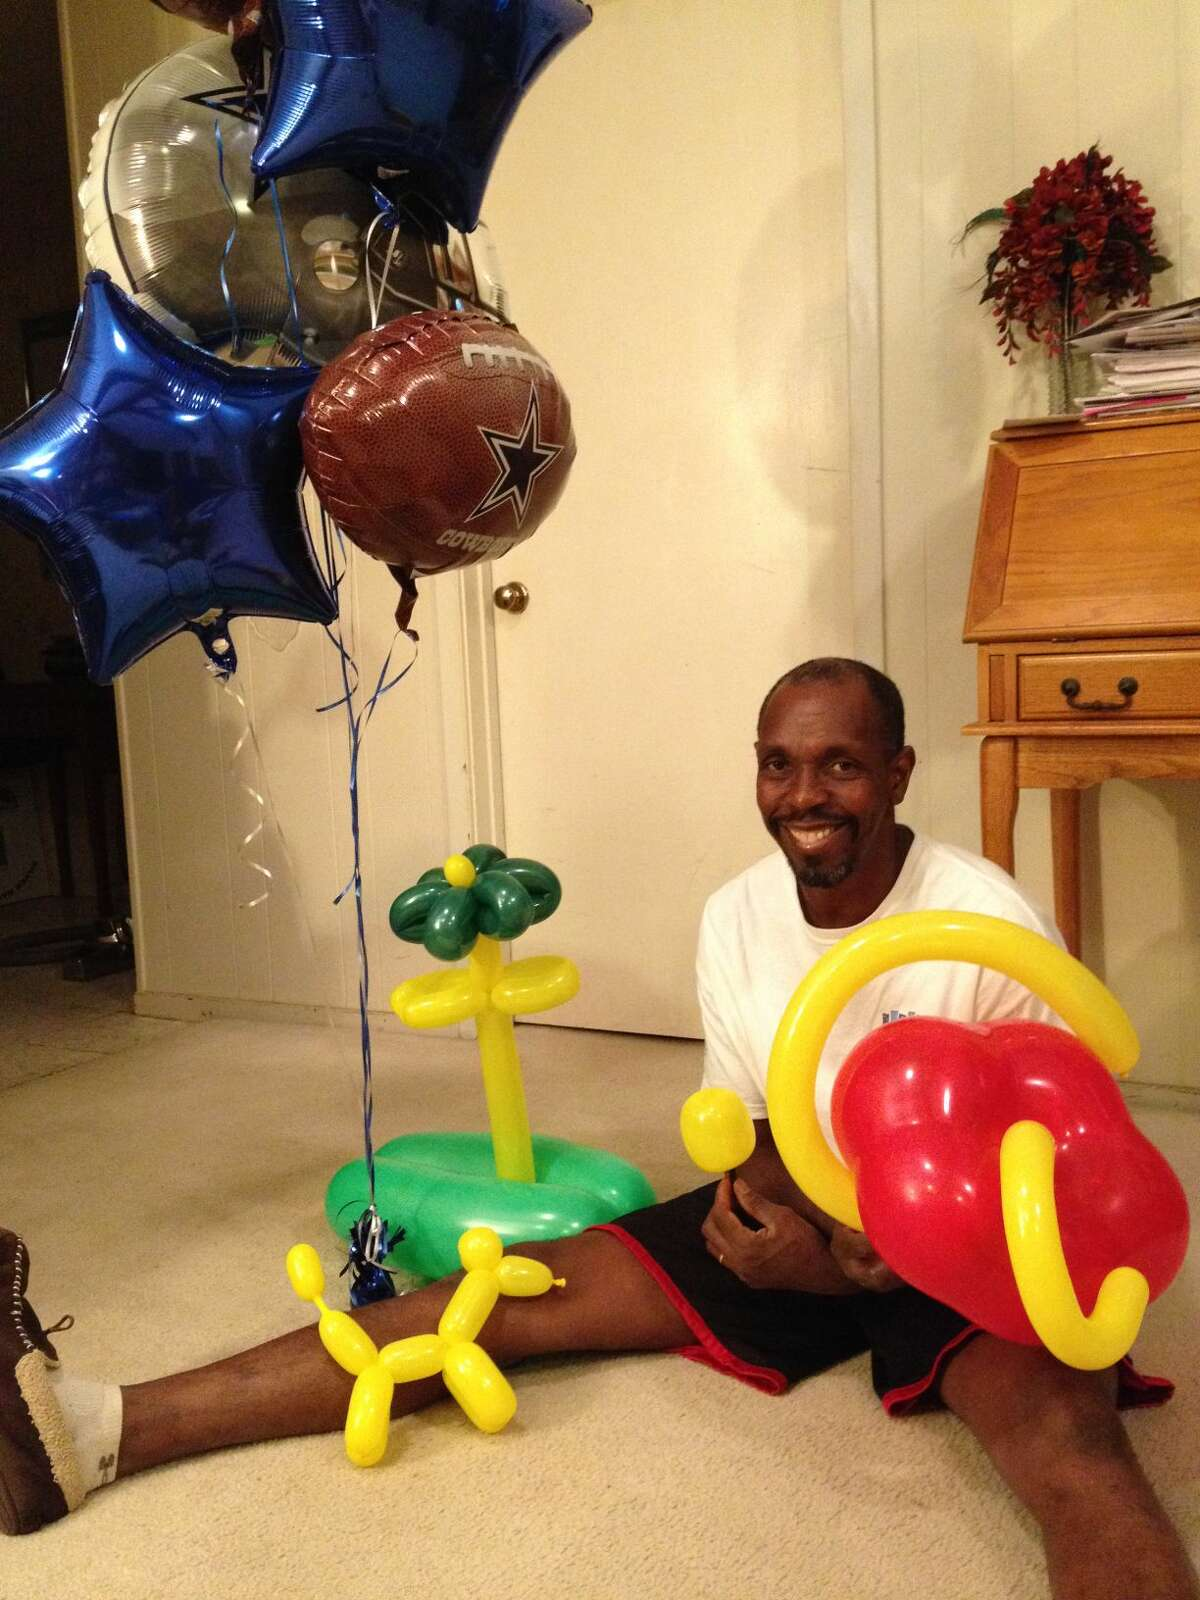 Retired teacher Larry Pitts shows of some of his handiwork. Pitts recently purchased Johnny's Balloons and More and is learning the ropes of creating balloon bouquets. Photo courtesy of Larry Pitts